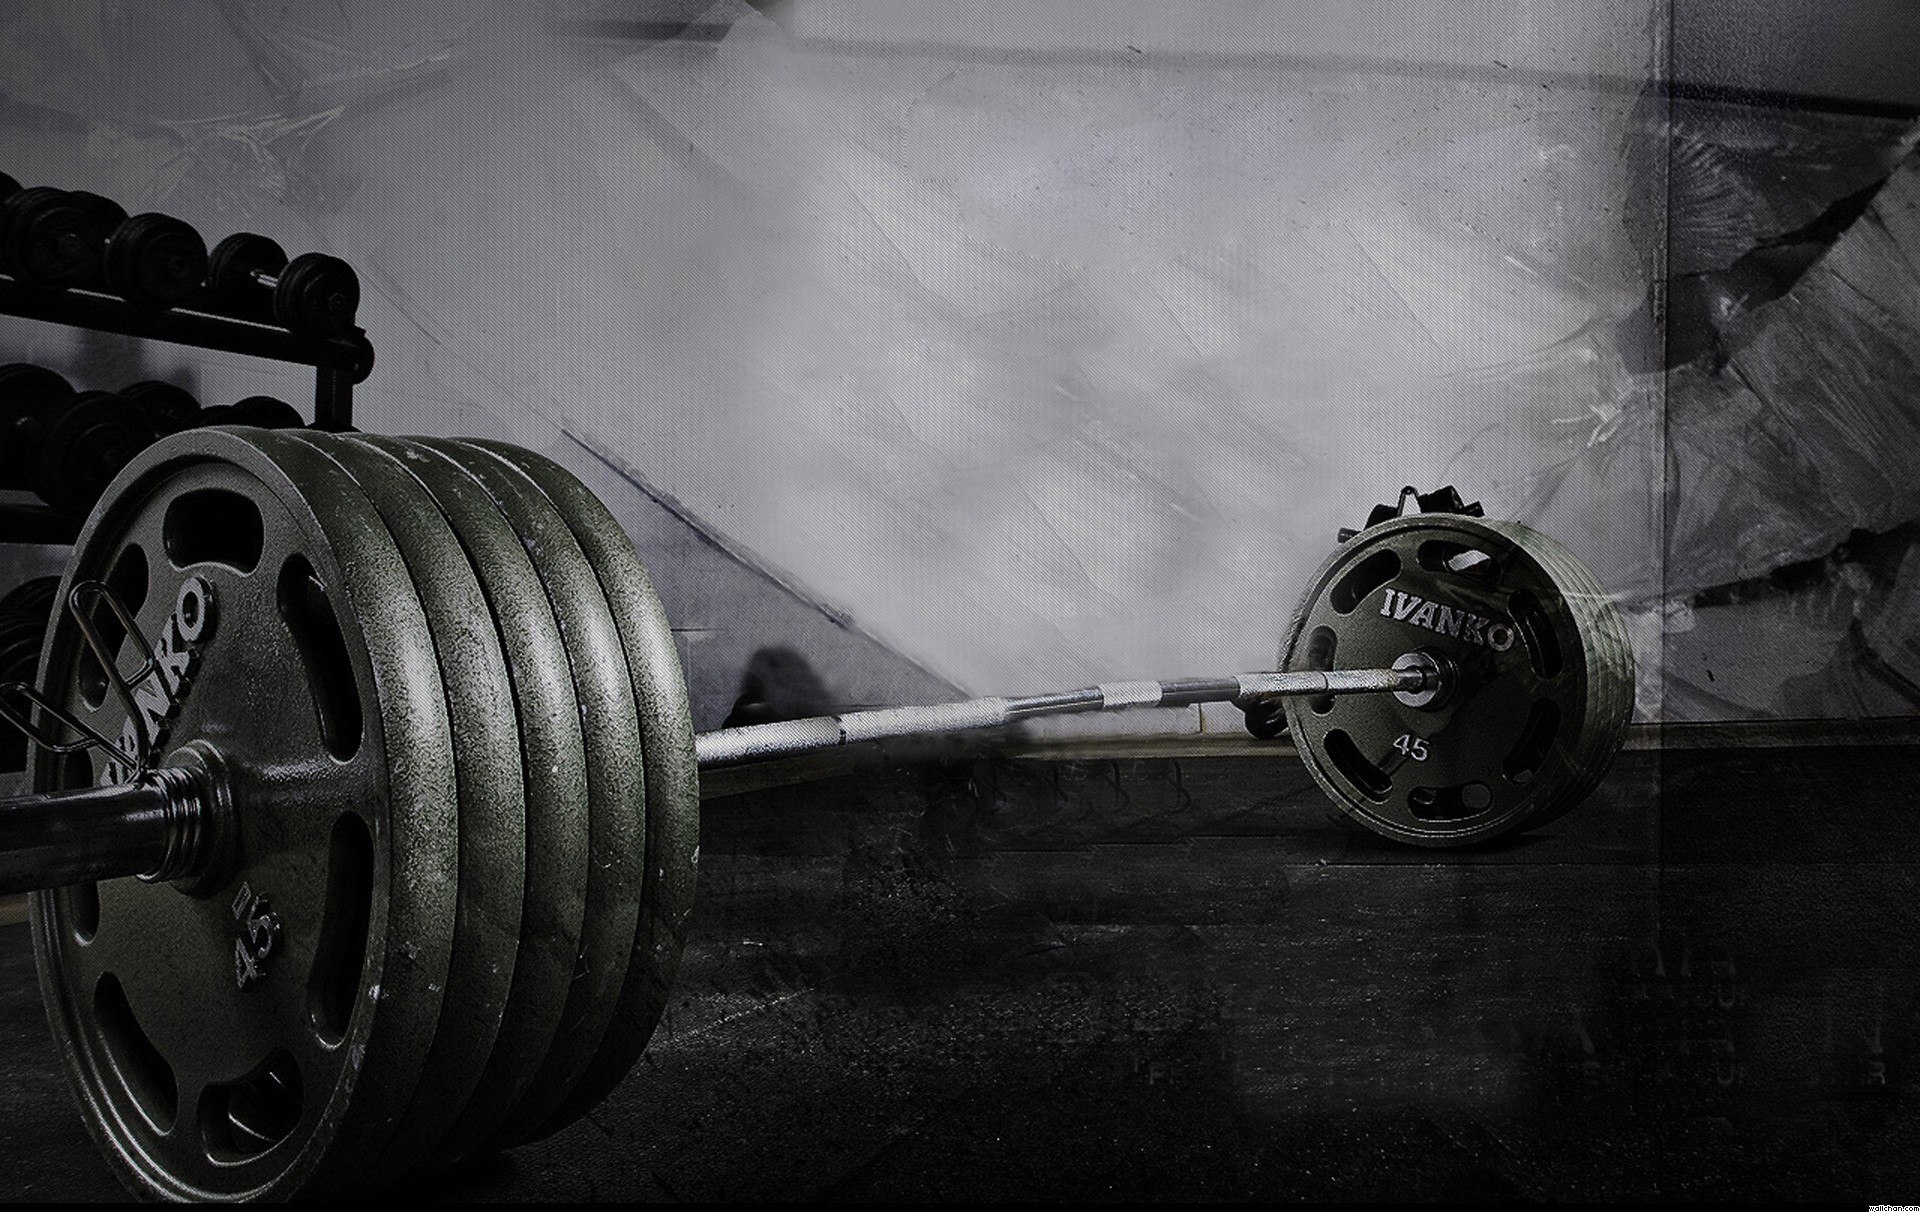 Bar Workout Hd Wallpaper Of Size 1920×1080 Resolutions 7TyaGO6s .